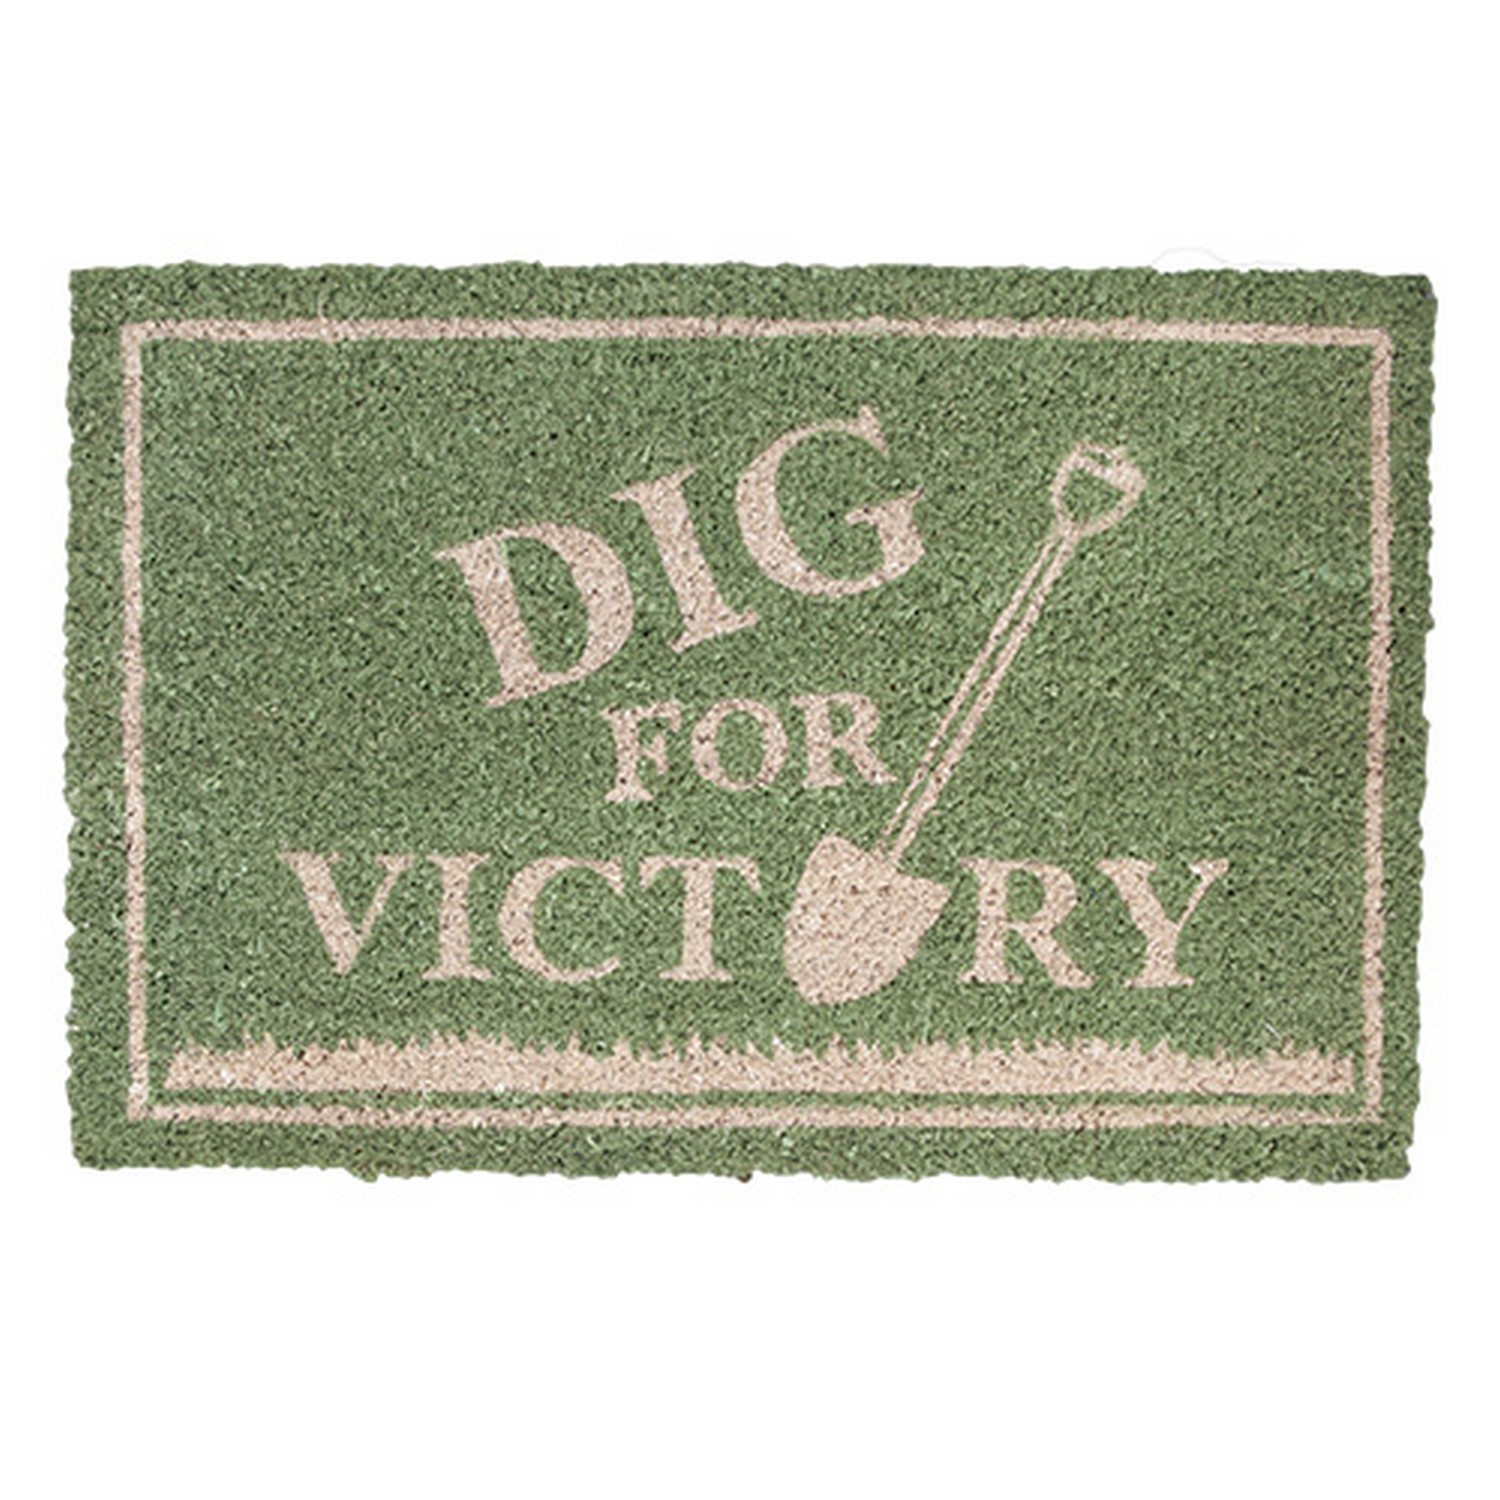 Dig for Victory on Green Background Garden Doormat